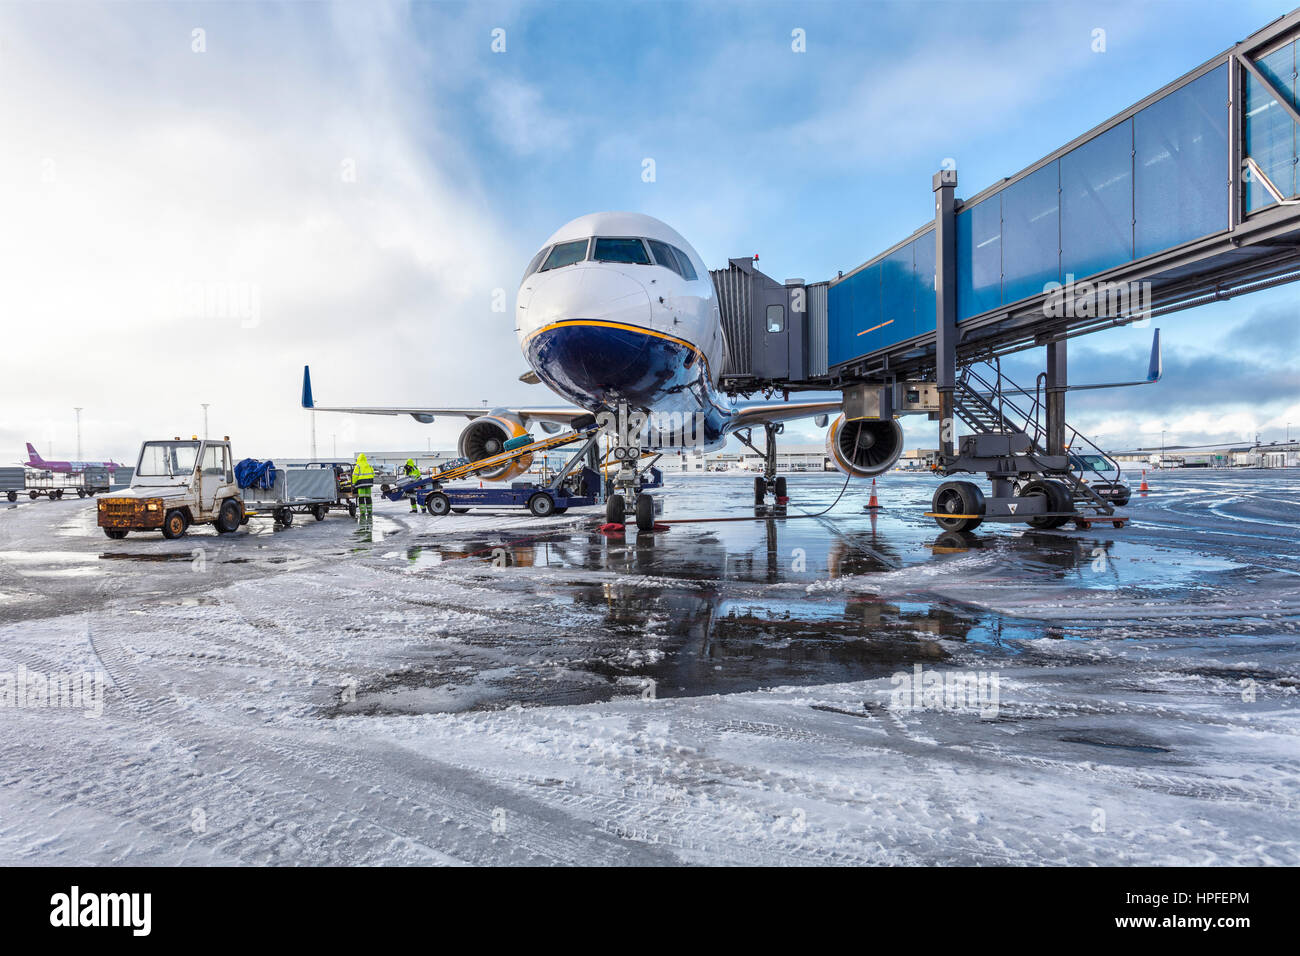 A jetliner being prepared for travel at Keflavik International Airport in Iceland. - Stock Image